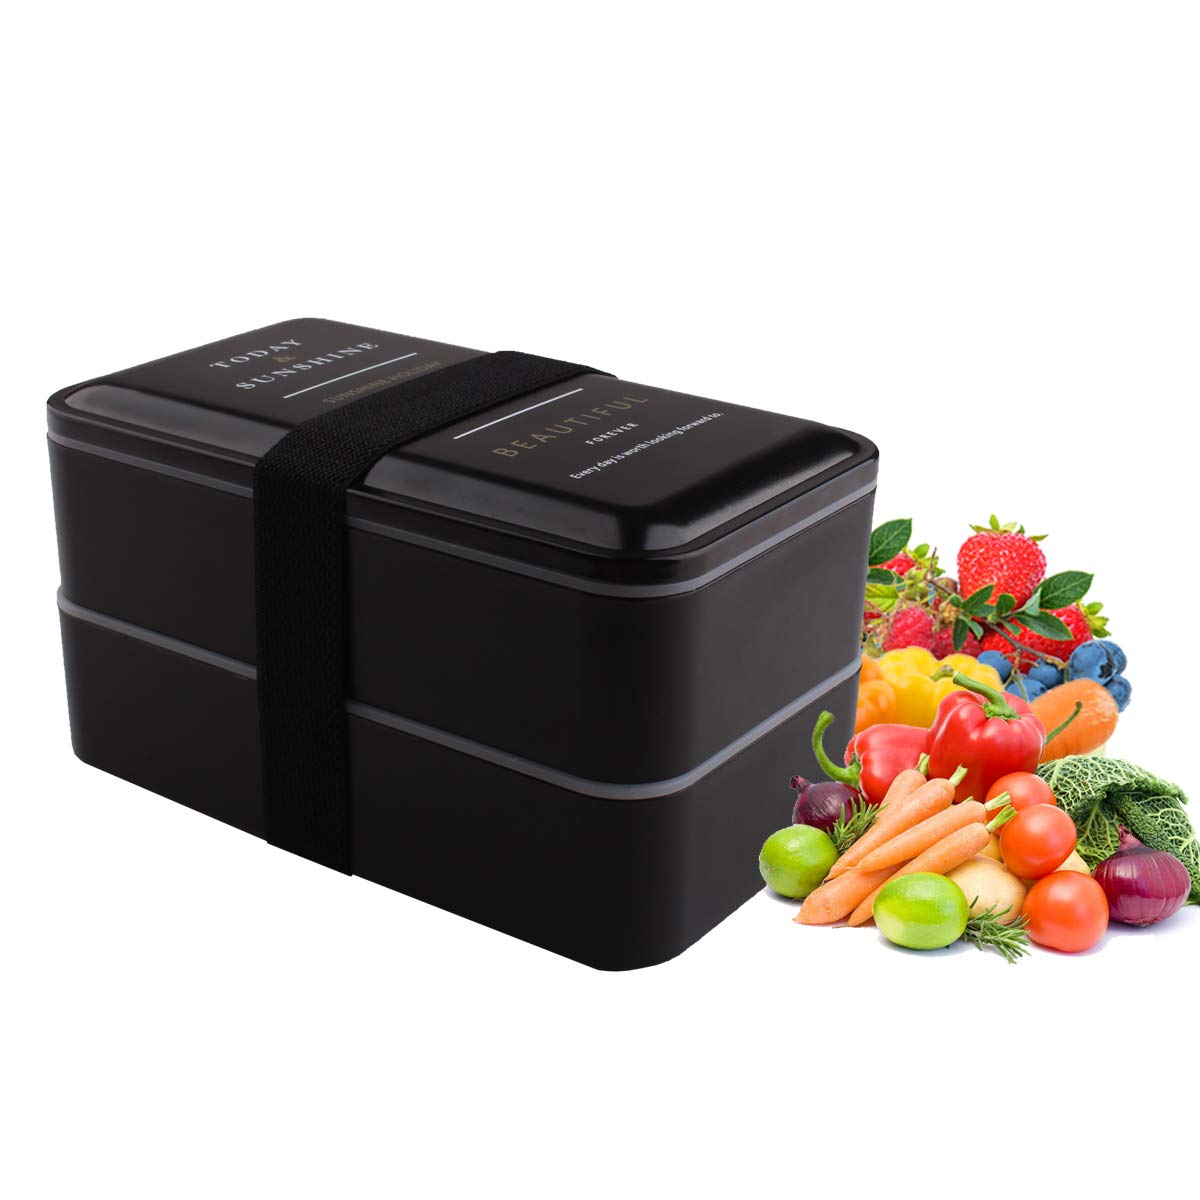 LAWOHO Bento Lunch Box Insulated 2-Tier Movable Divider Compartments Box with Fork & Spoon for Kids & Adults Black